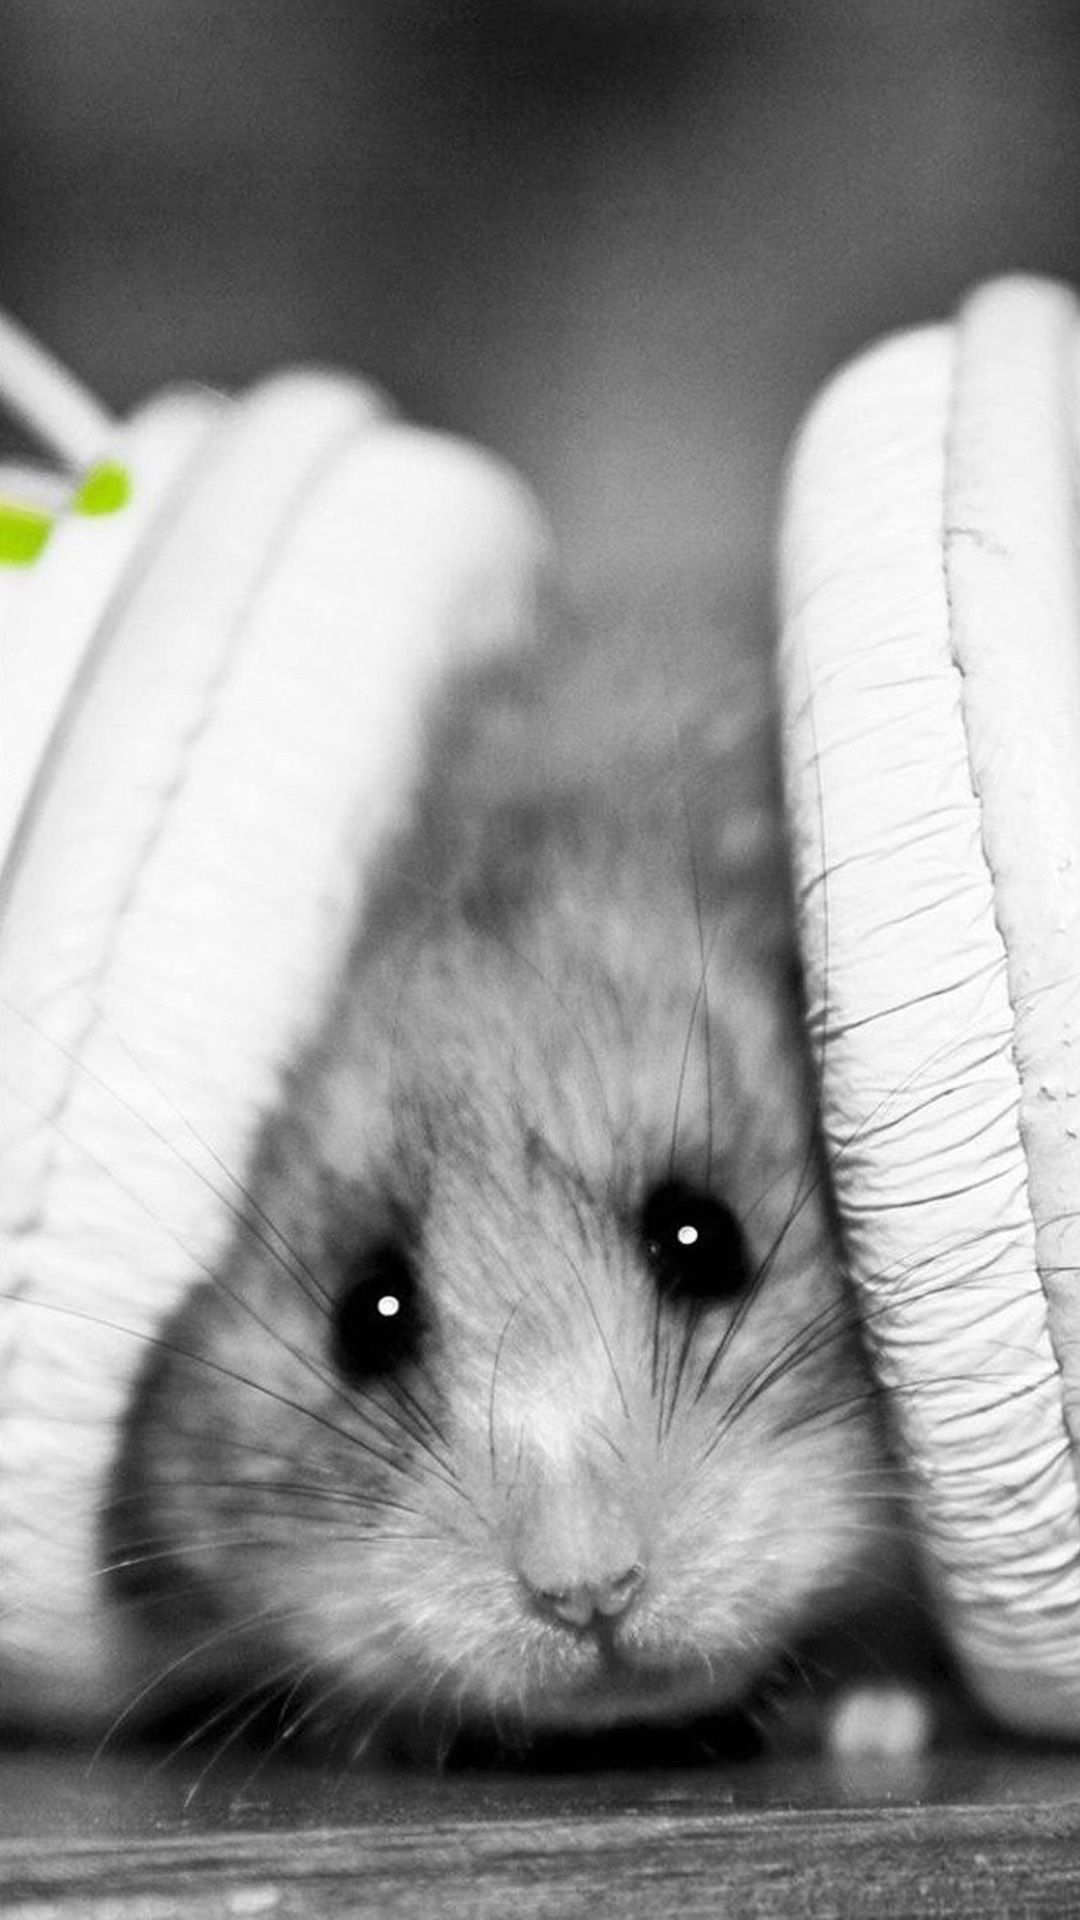 Tap and get the free app animals cute hamster with headphones animals cute hamster with headphones black voltagebd Images